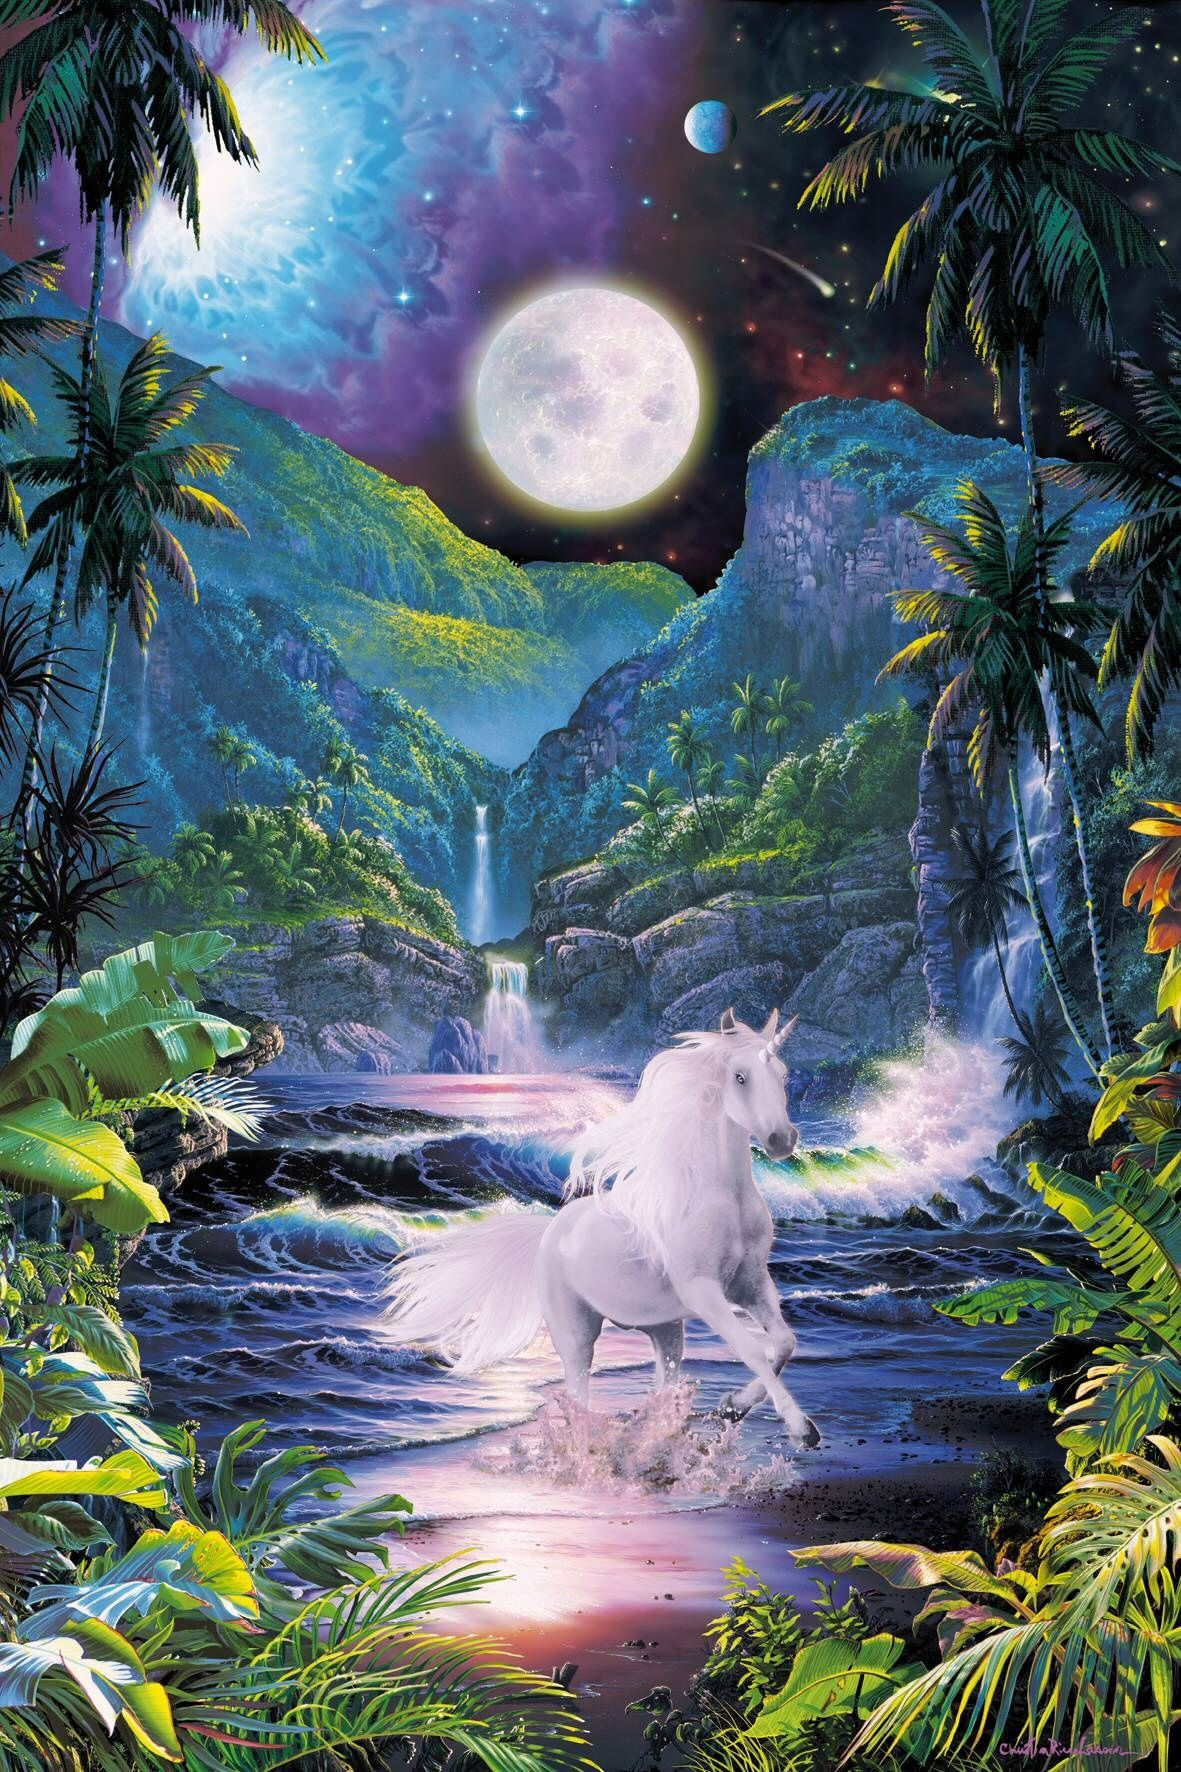 Moonlight Beach Unicorn Fantasy Myth Mythical Mystical ...